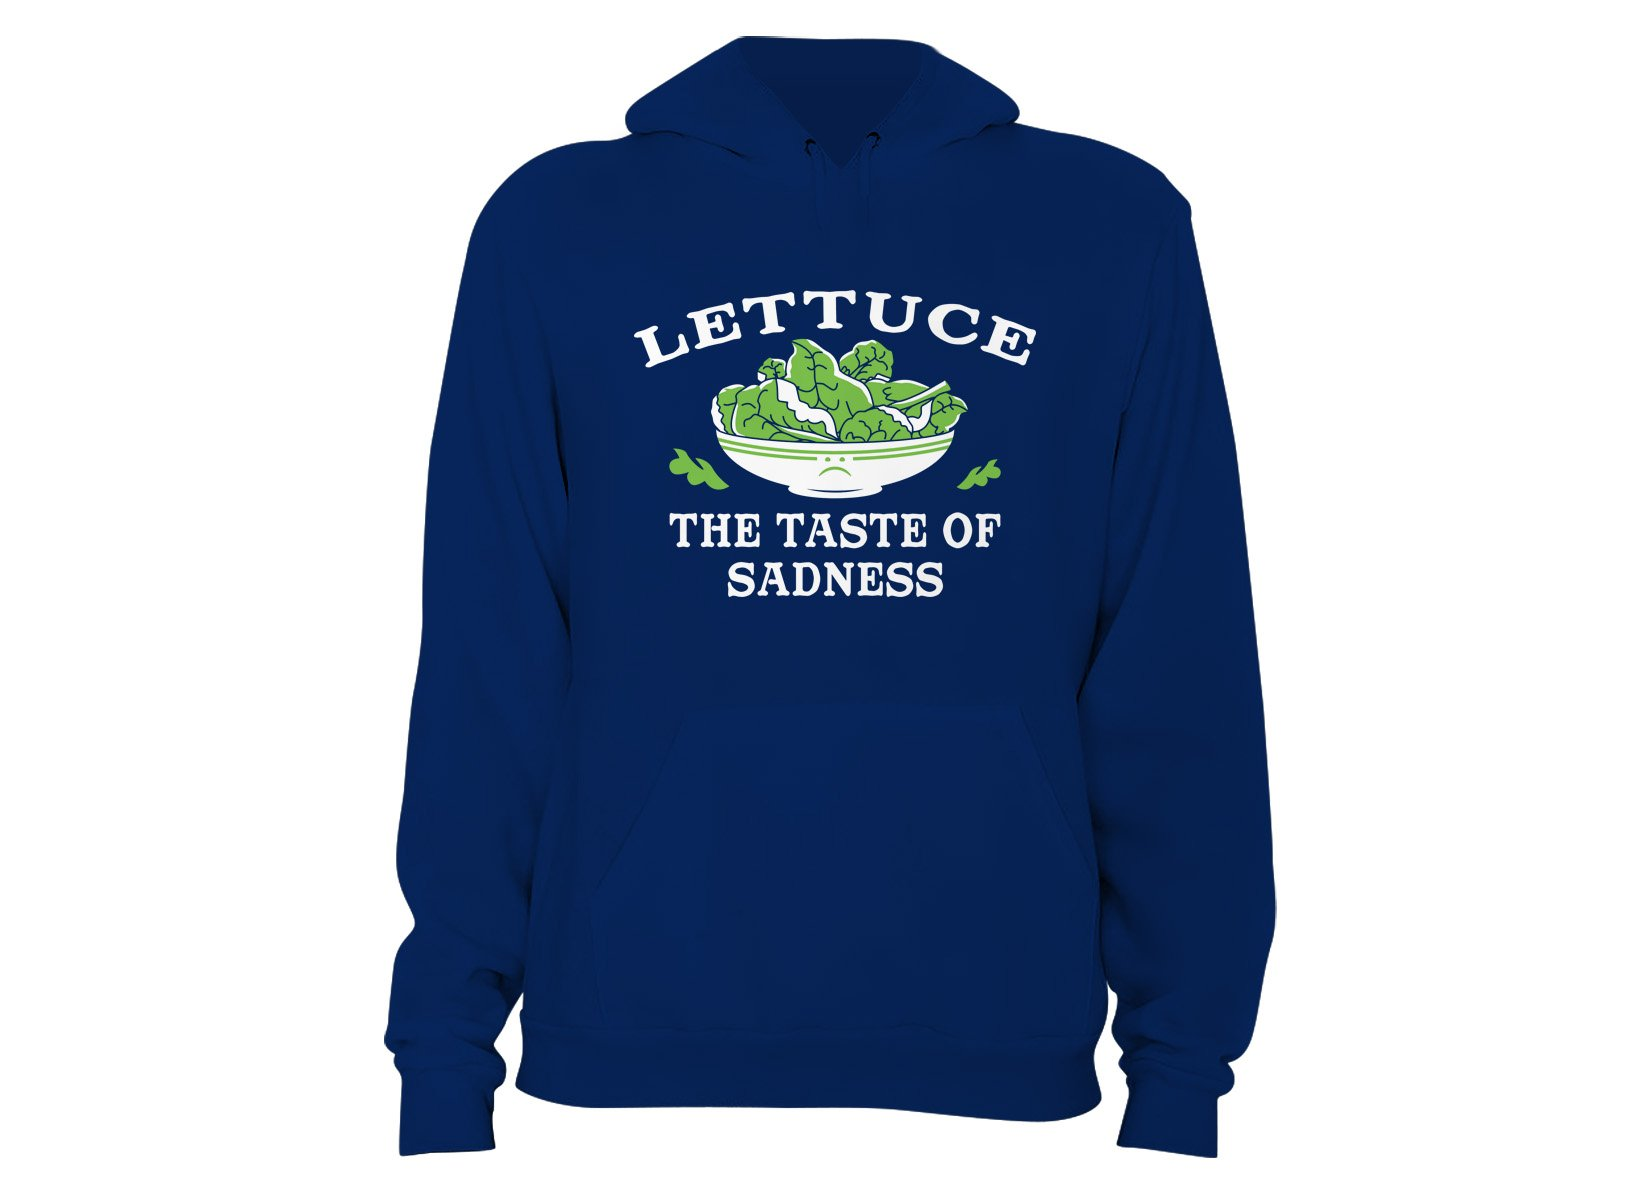 Lettuce, The Taste Of Sadness on Hoodie